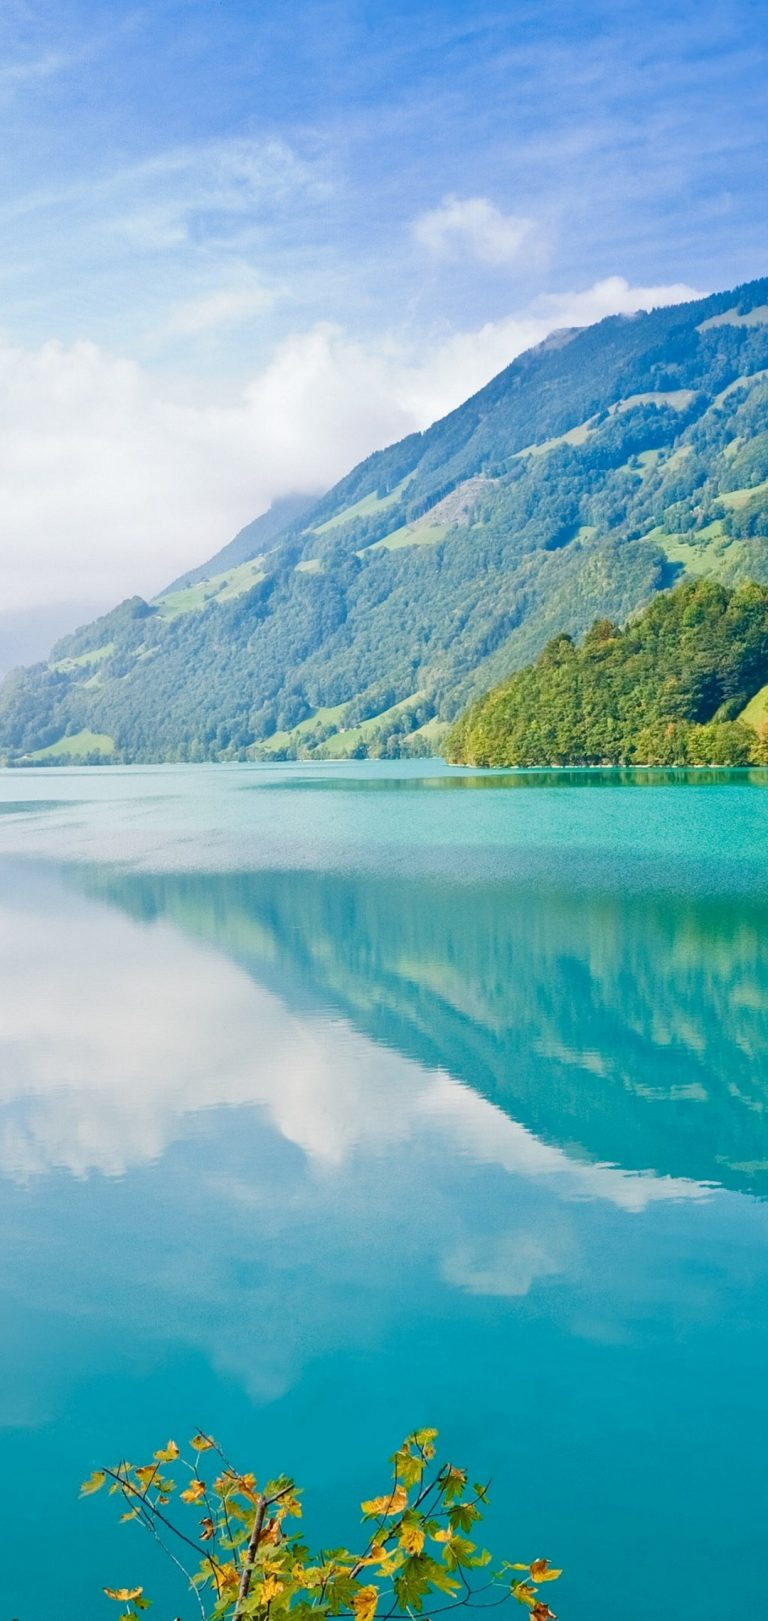 Beautiful Lake Wallpaper 1080x2280 768x1621